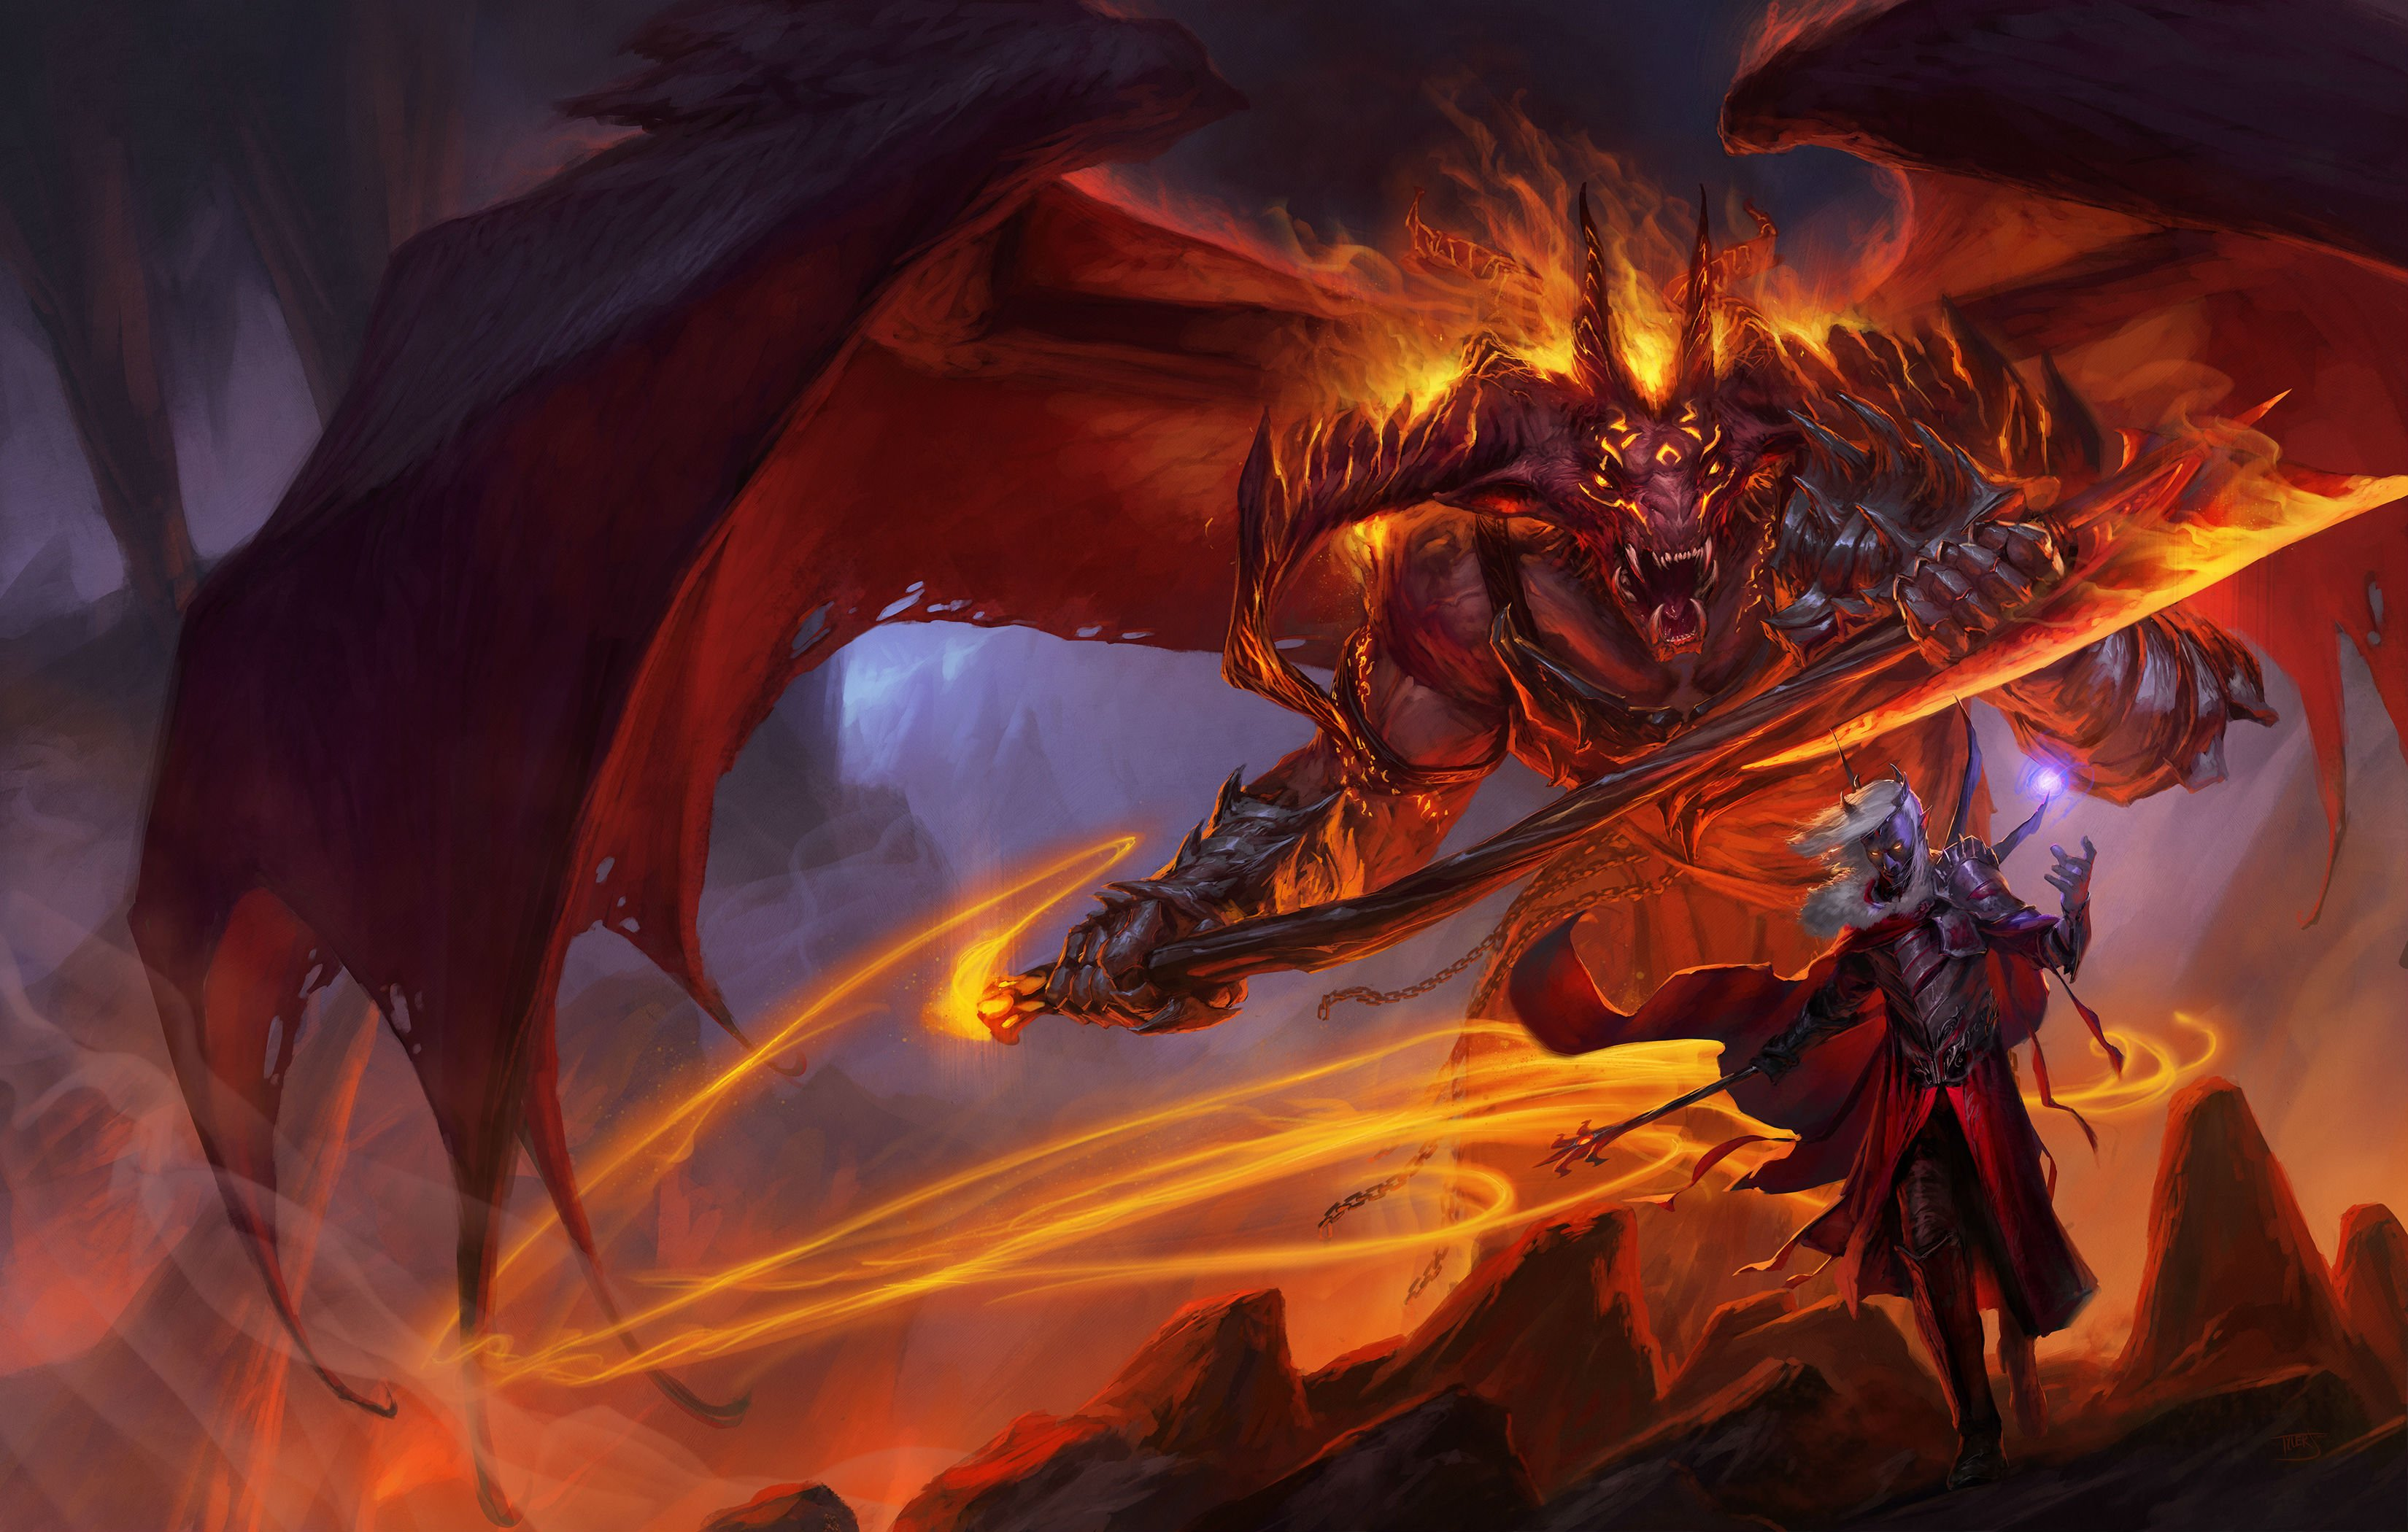 Dungeons And Dragons Wallpaper Hd: Dungeons And Dragons Game